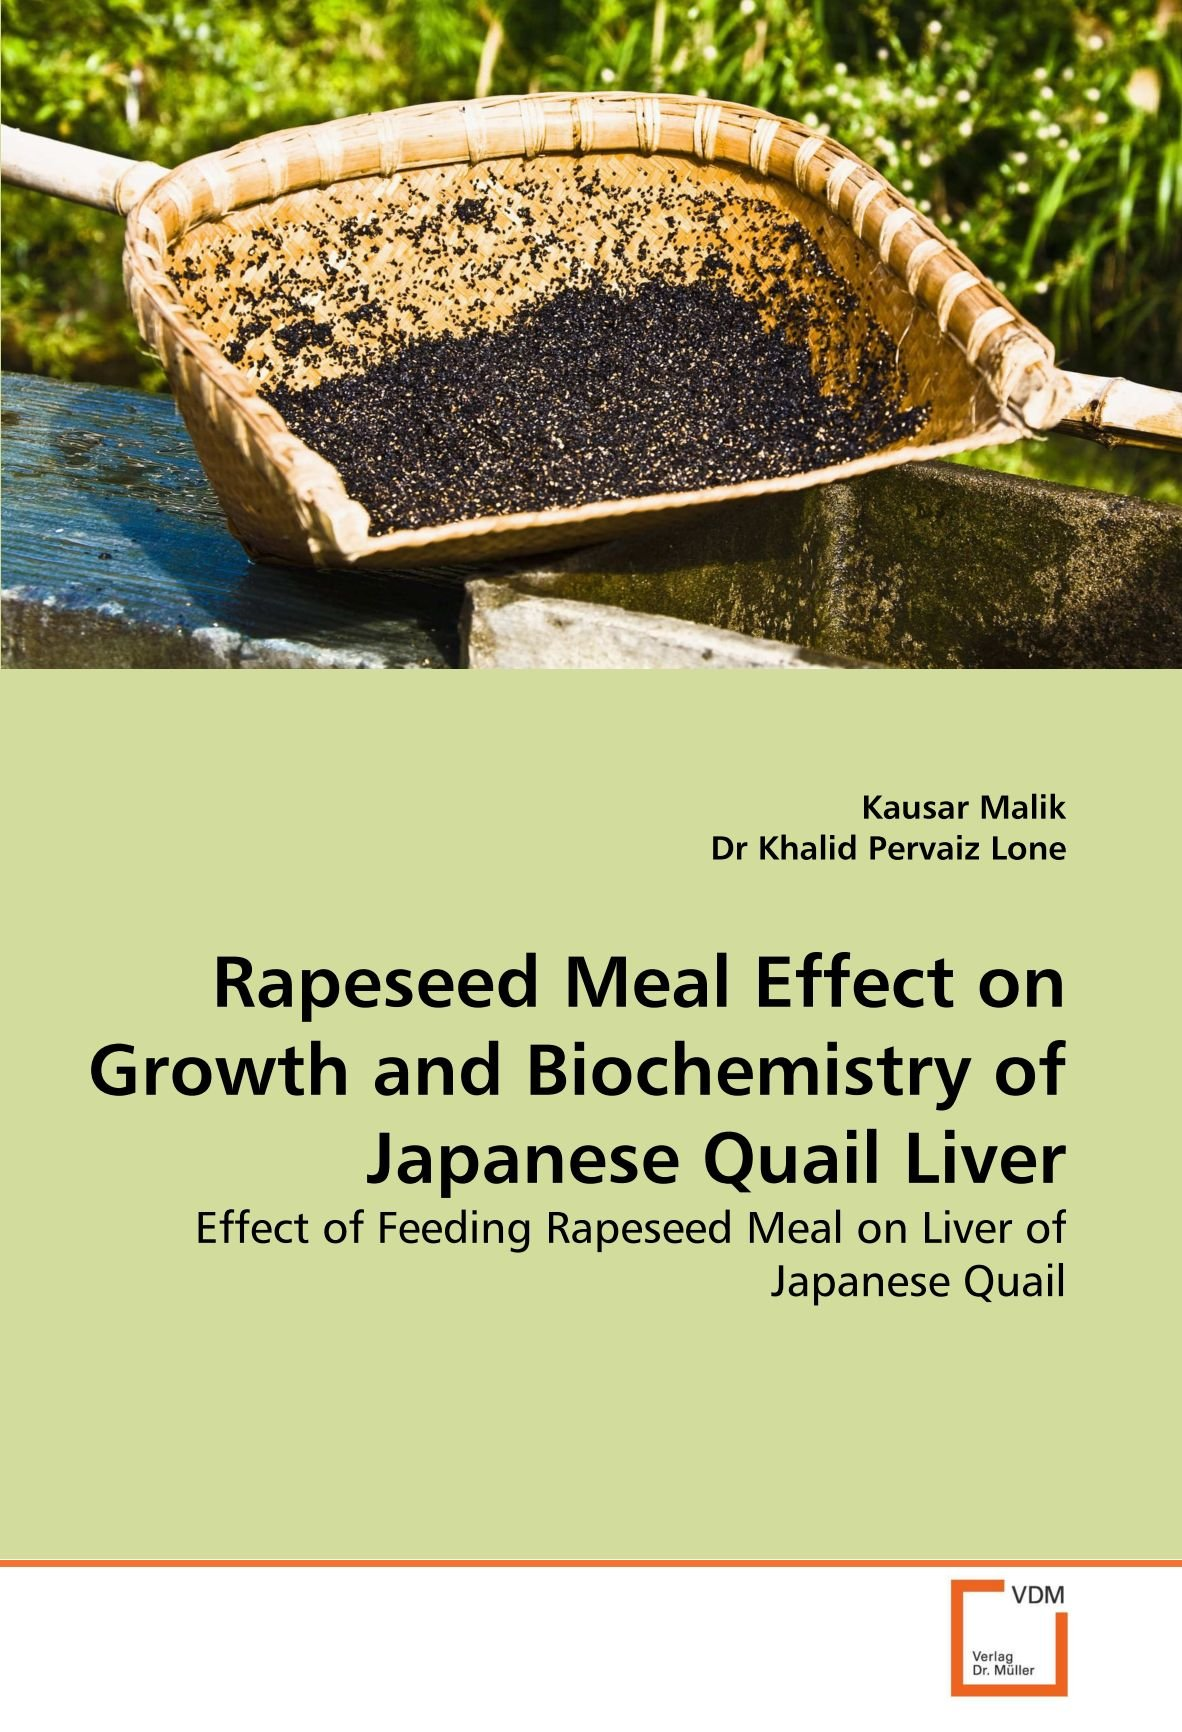 Rapeseed Meal Effect on Growth and Biochemistry of Japanese Quail Liver: Effect of Feeding Rapeseed Meal on Liver of Japanese Quail PDF